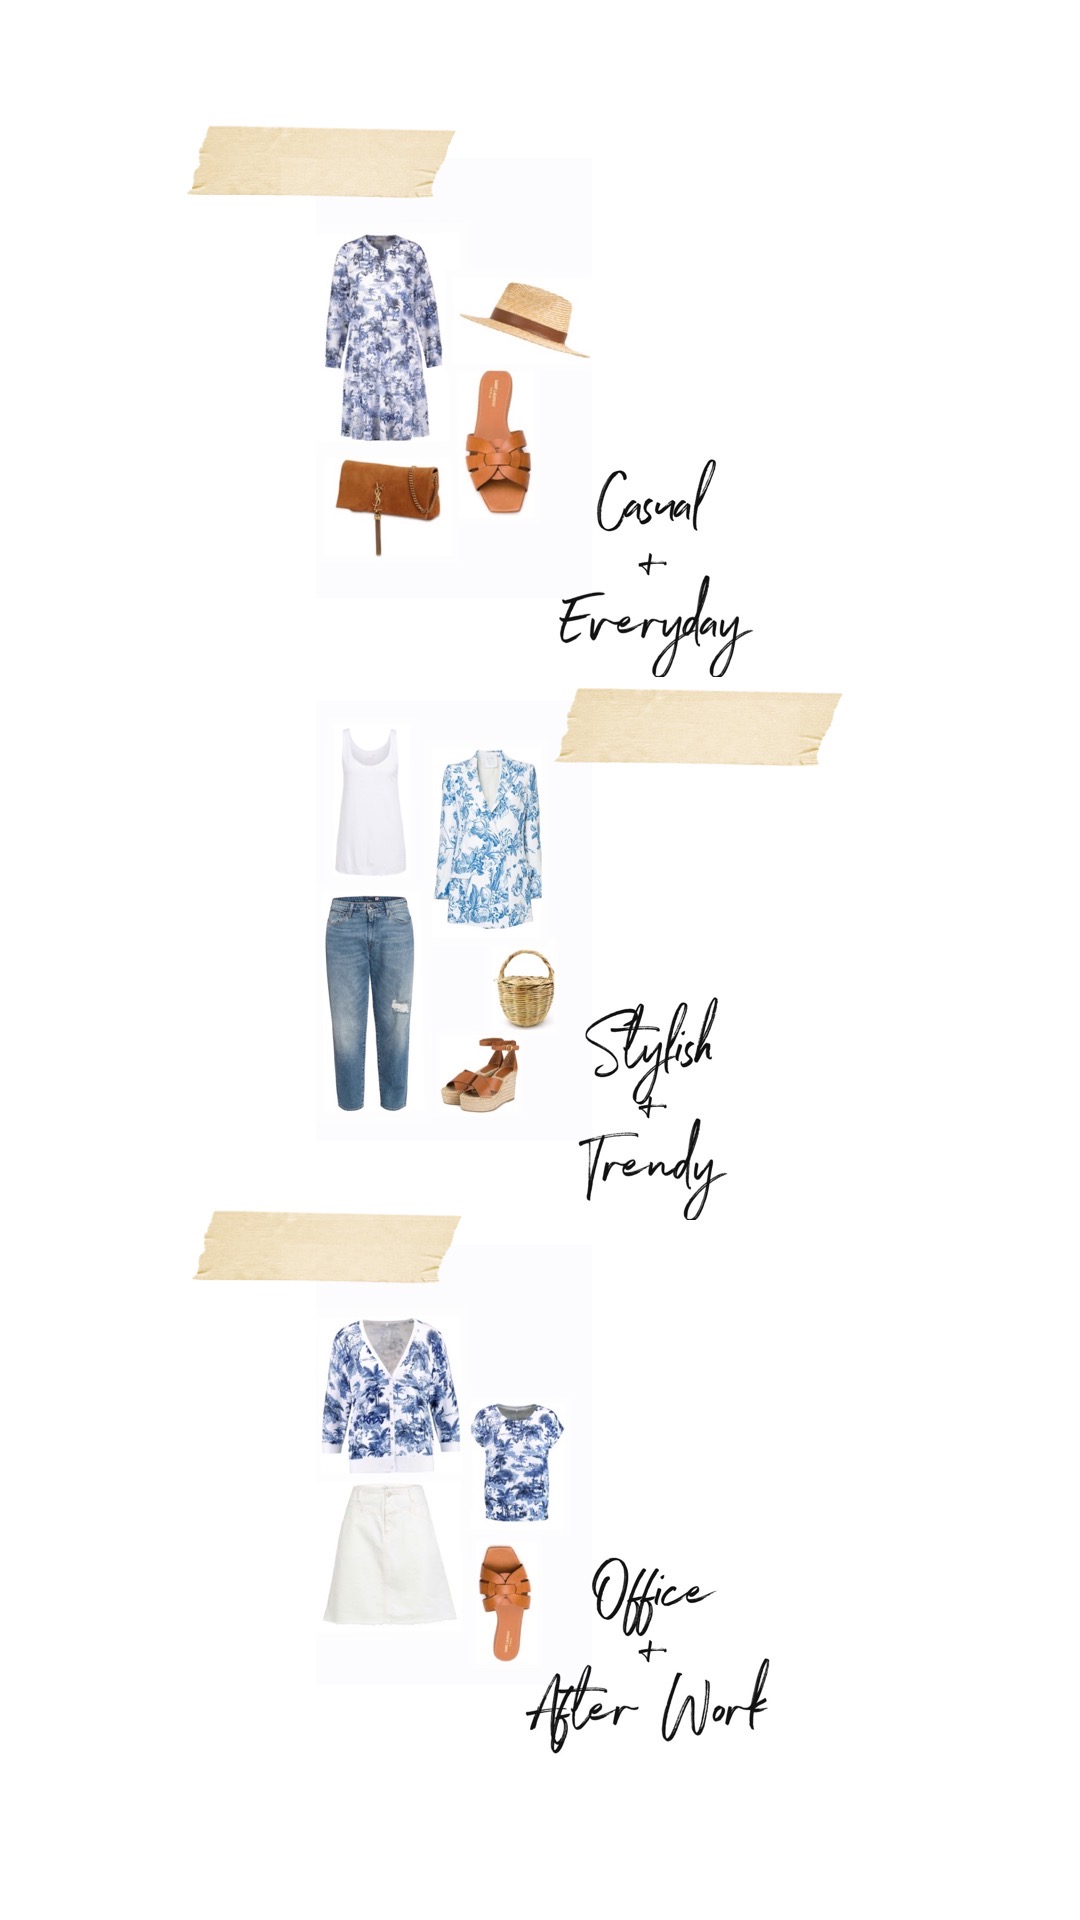 Toile-de-Jouy-Sommer-Muster-Inspiration-Styles